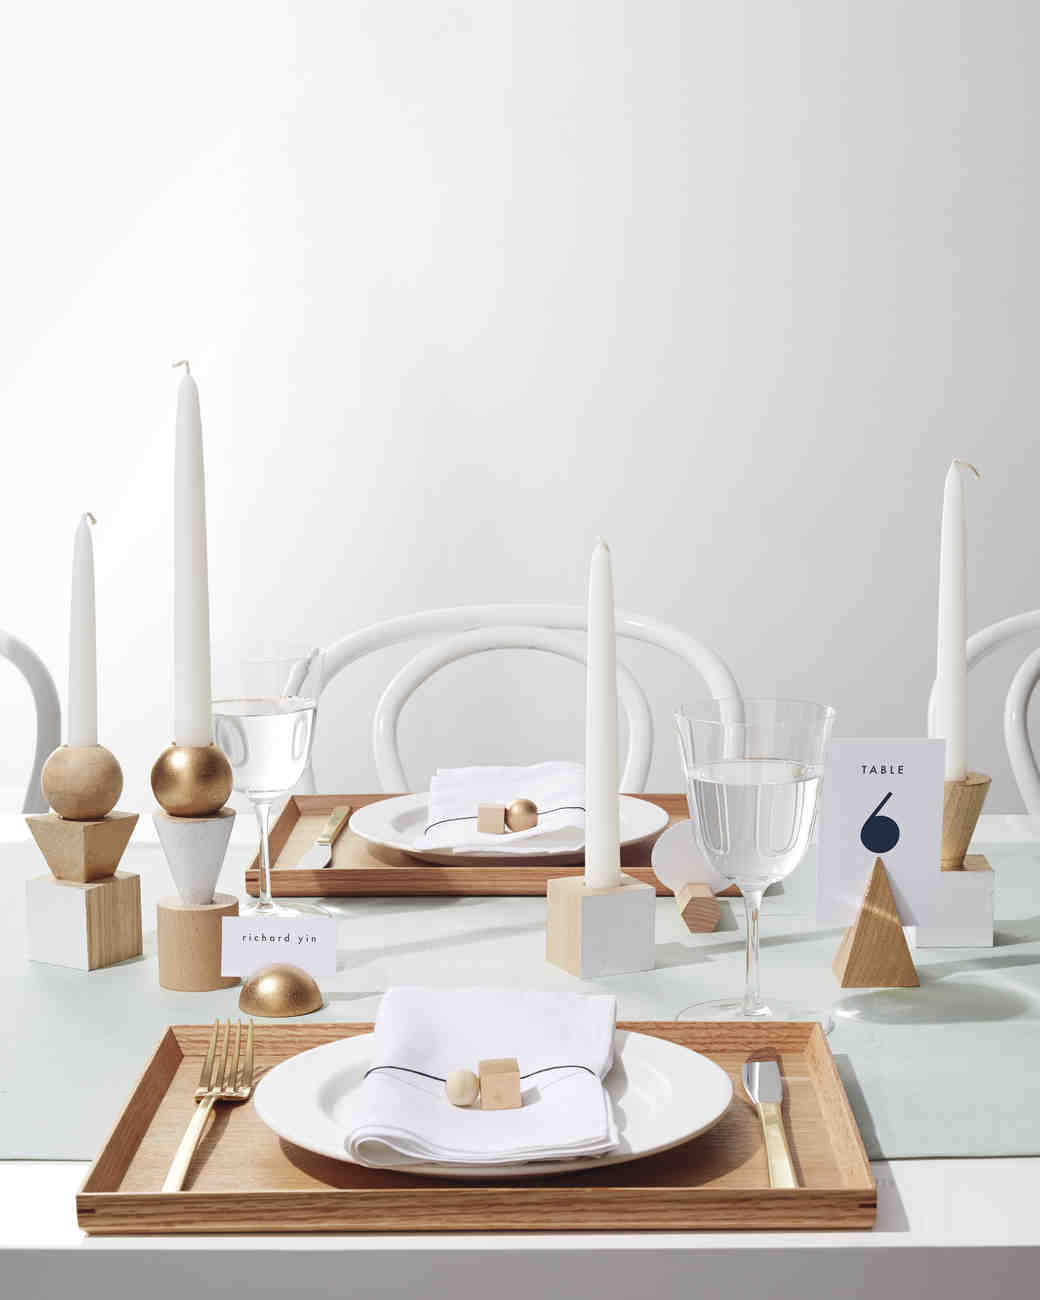 Geometric Candle Sticks : wedding table settings with candles - pezcame.com